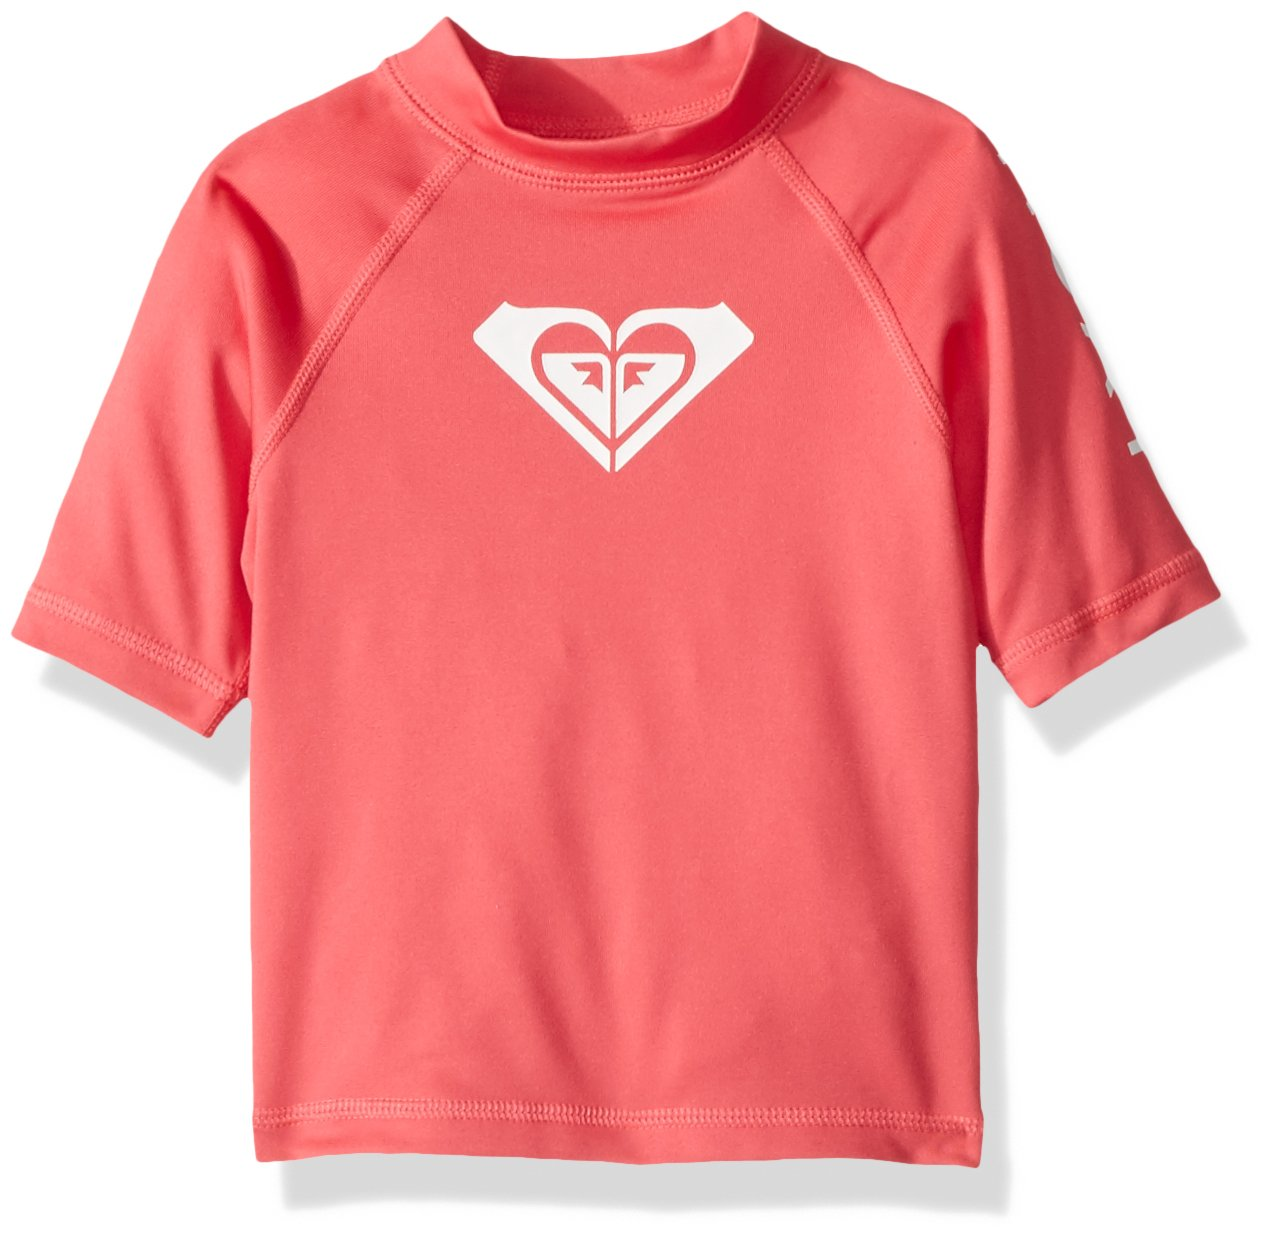 ROXY Big Girls' Whole Hearted Short Sleeve Rashguard, Rouge red, 14/XL by ROXY